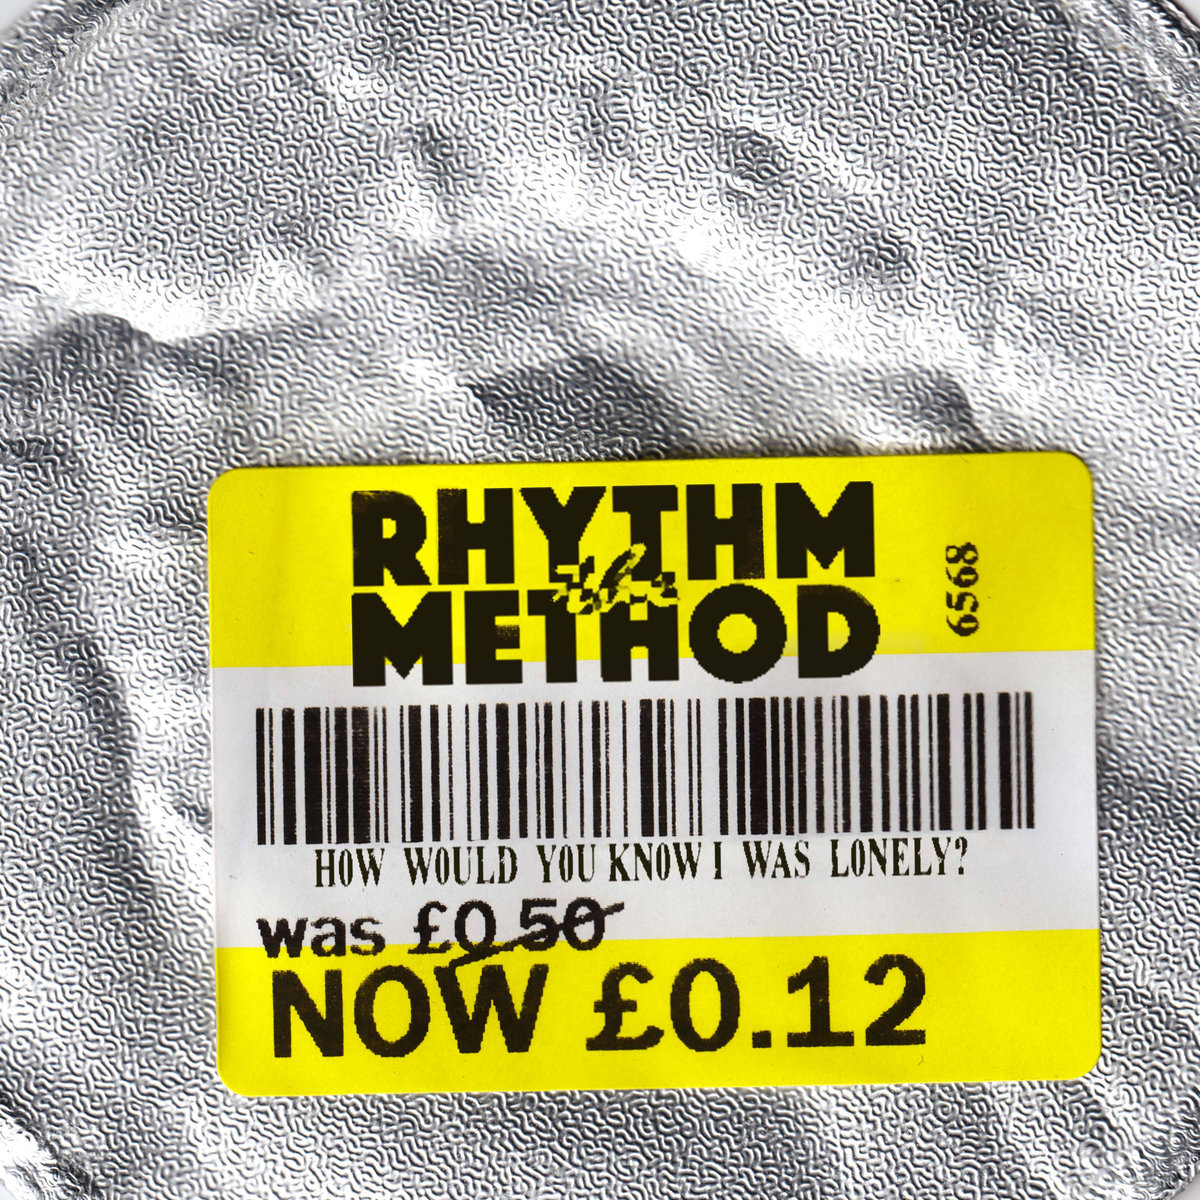 Album Review: The Rhythm Method - How Would You Know I Was Lonely?